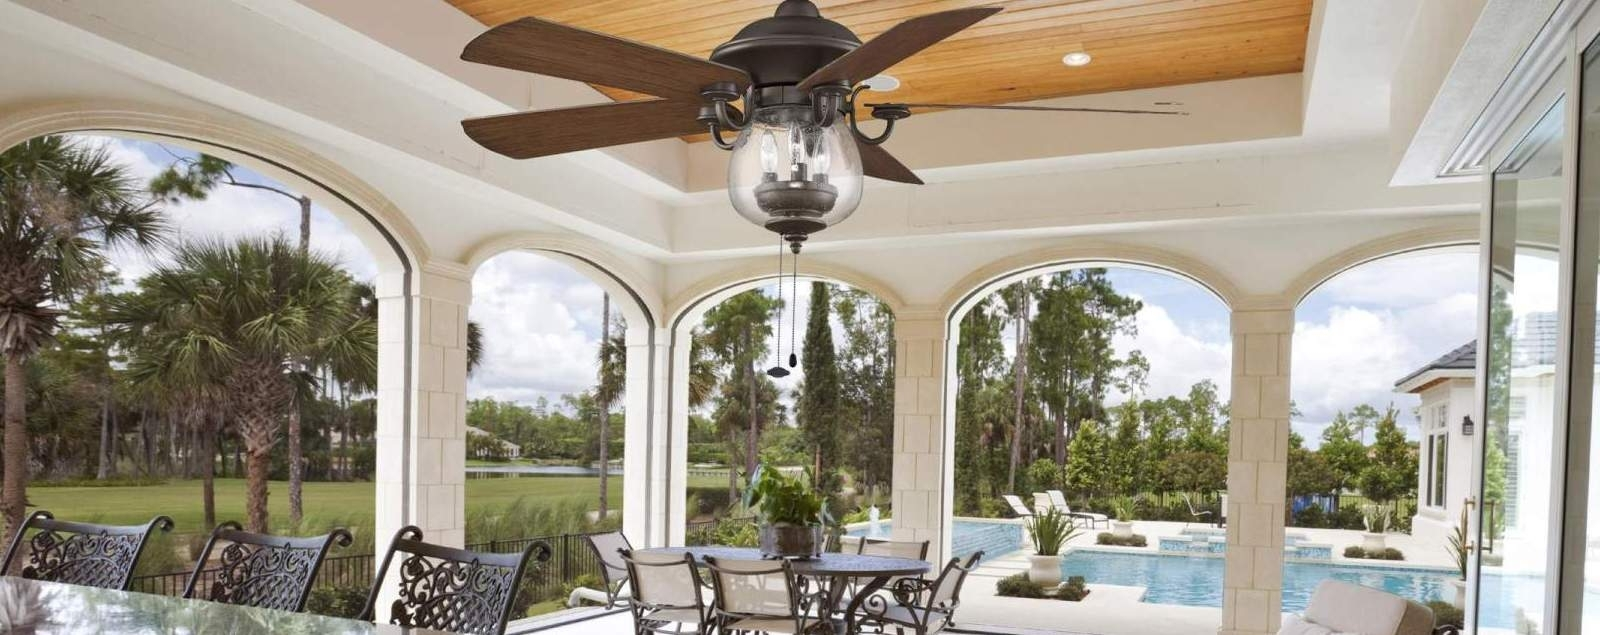 Outdoor Ceiling Fans For Wet Locations In Most Current Outdoor Ceiling Fans – Shop Wet, Dry, And Damp Rated Outdoor Fans (View 2 of 20)